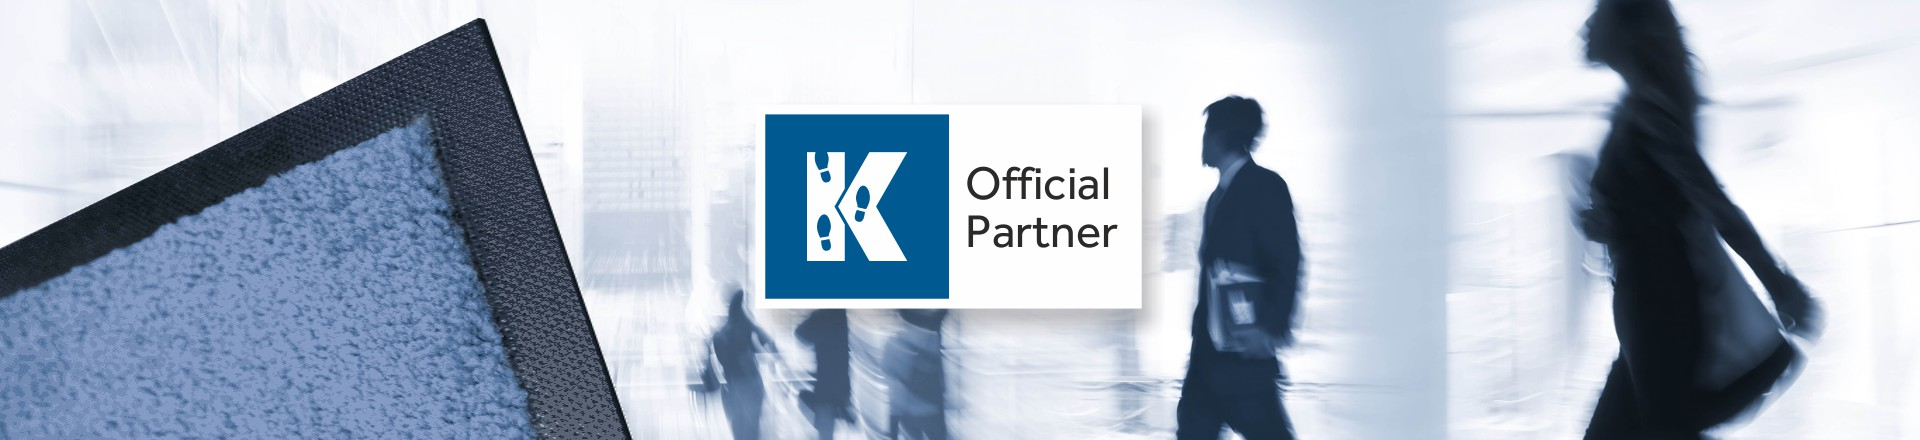 Become An Official Kleen-Tex Partner